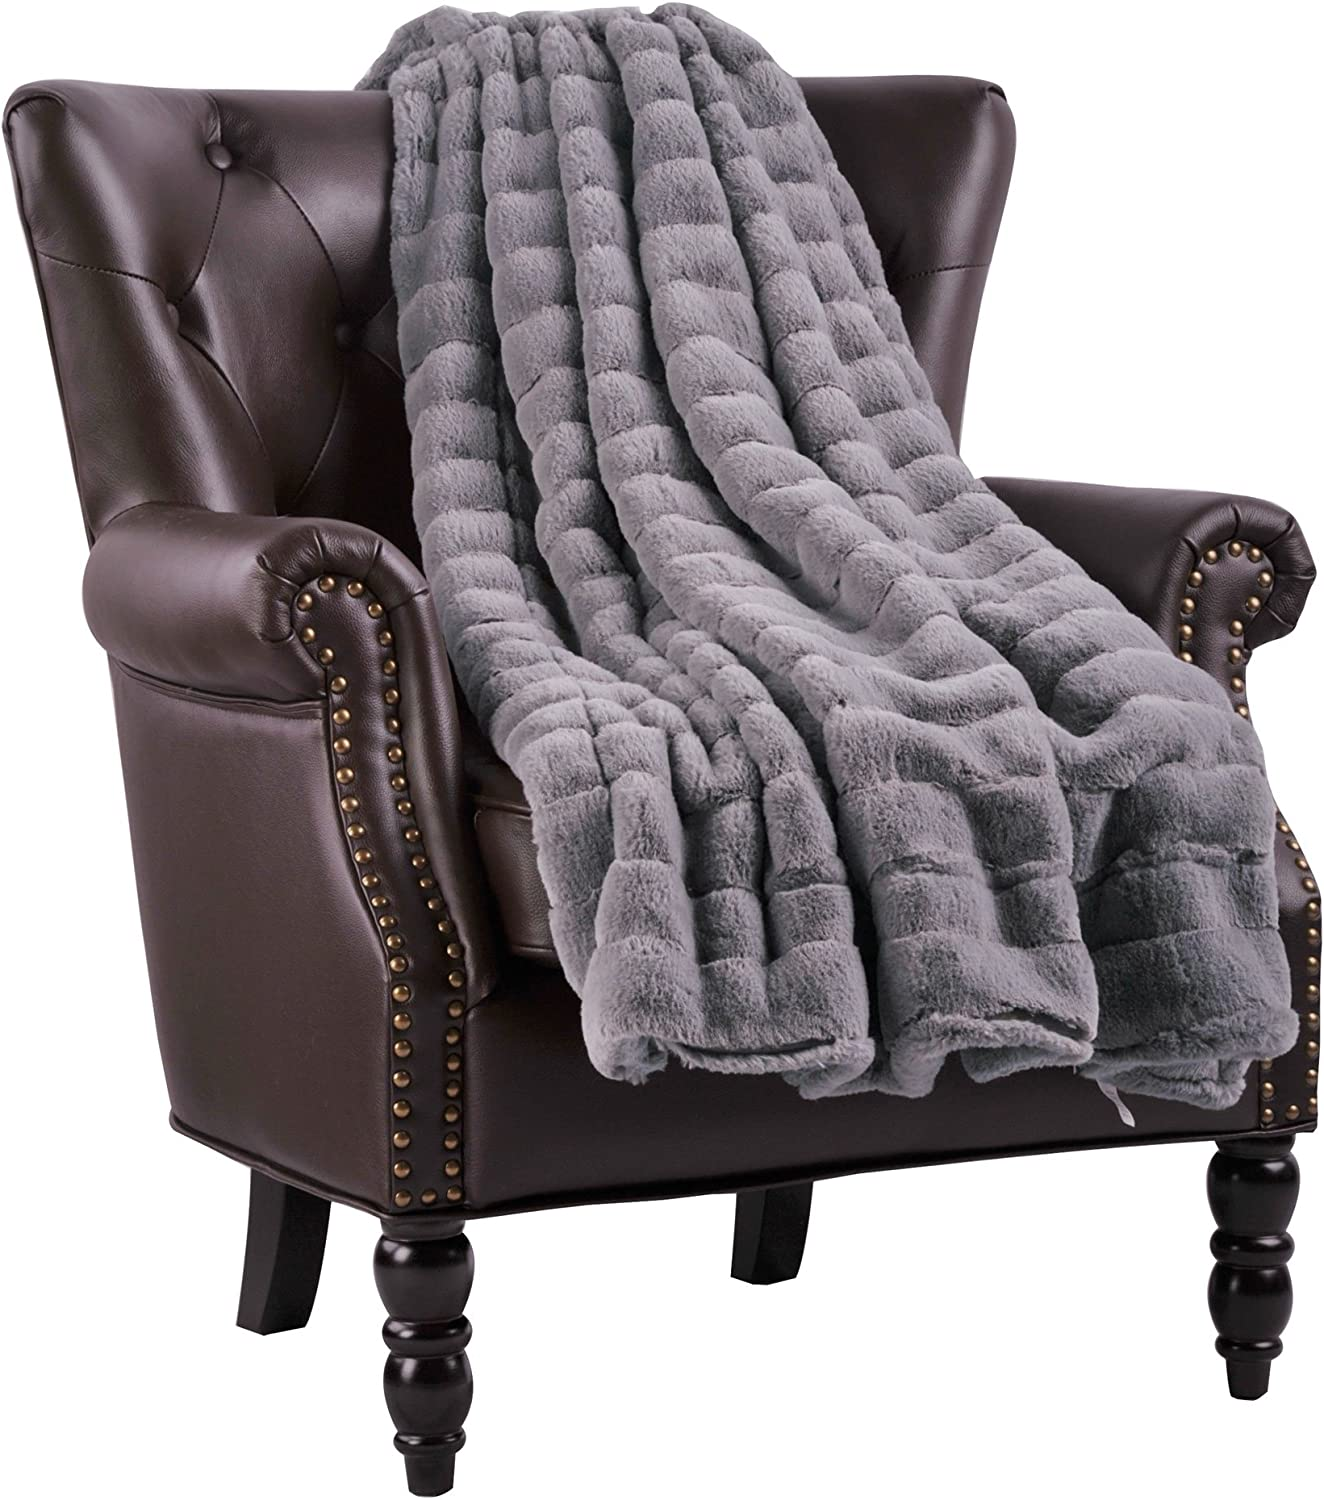 Home Soft Things Supermink Throw Blanket, 50